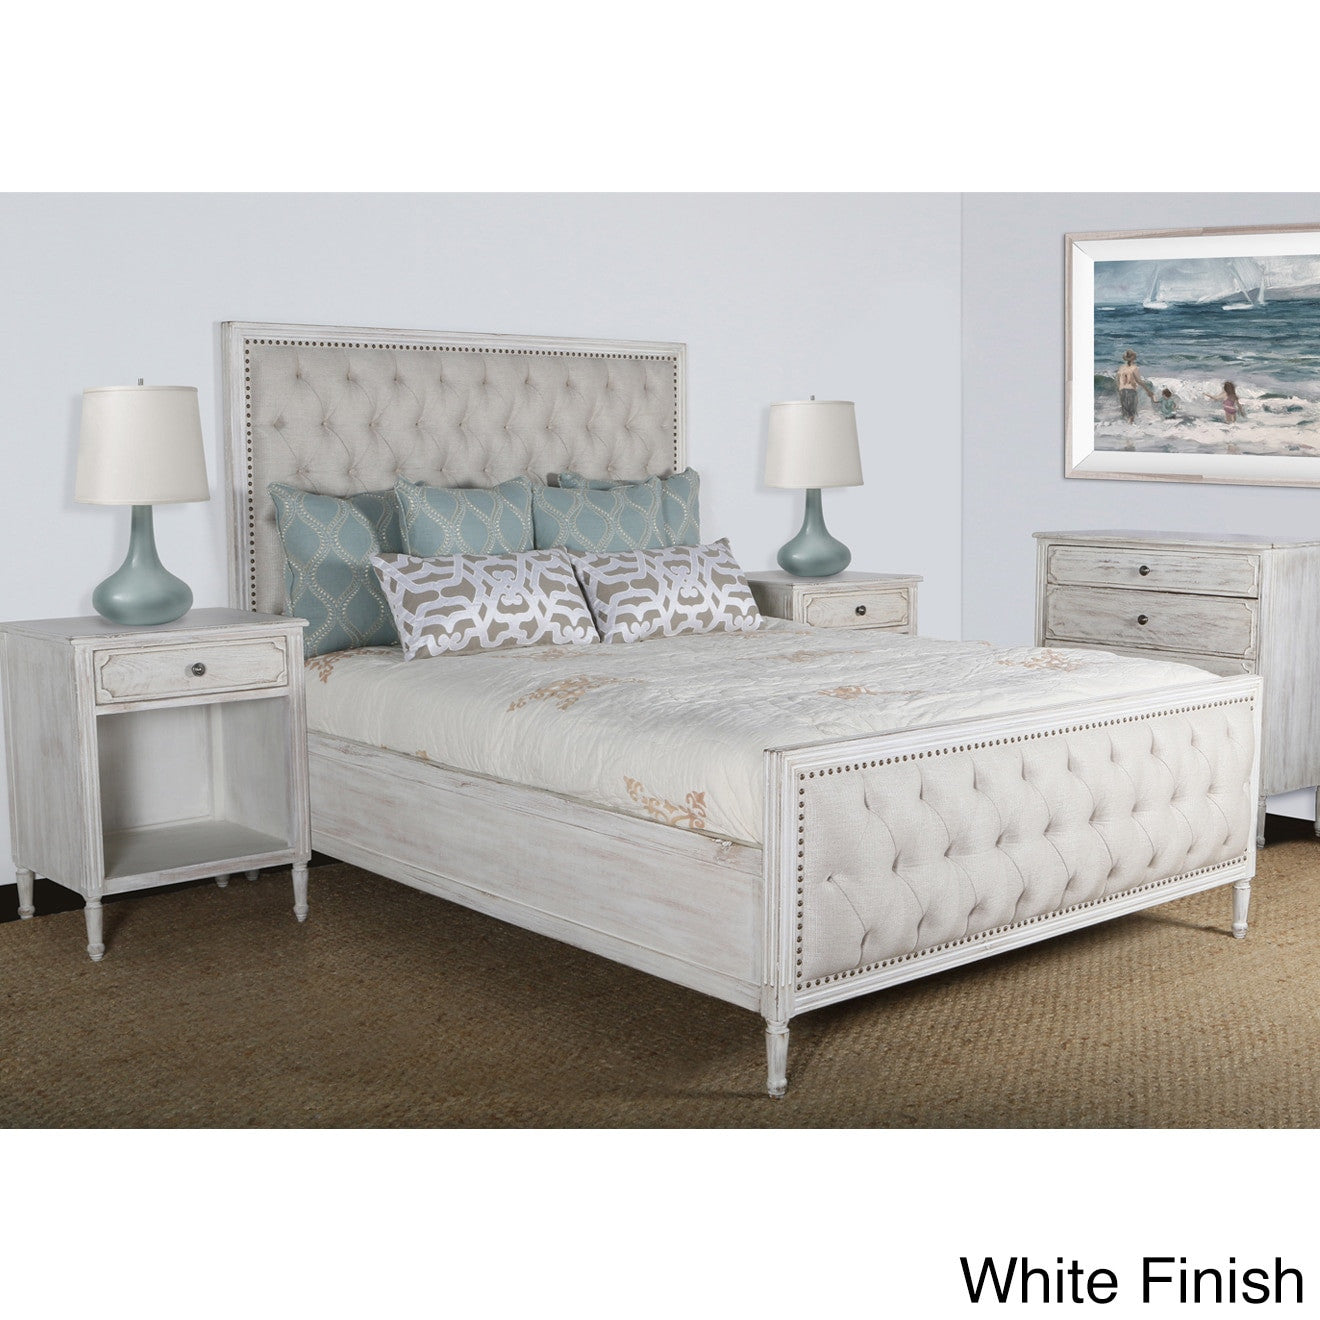 Tufted Bedroom Sets | Lennox Design Hannah Tufted Bedroom Set King White